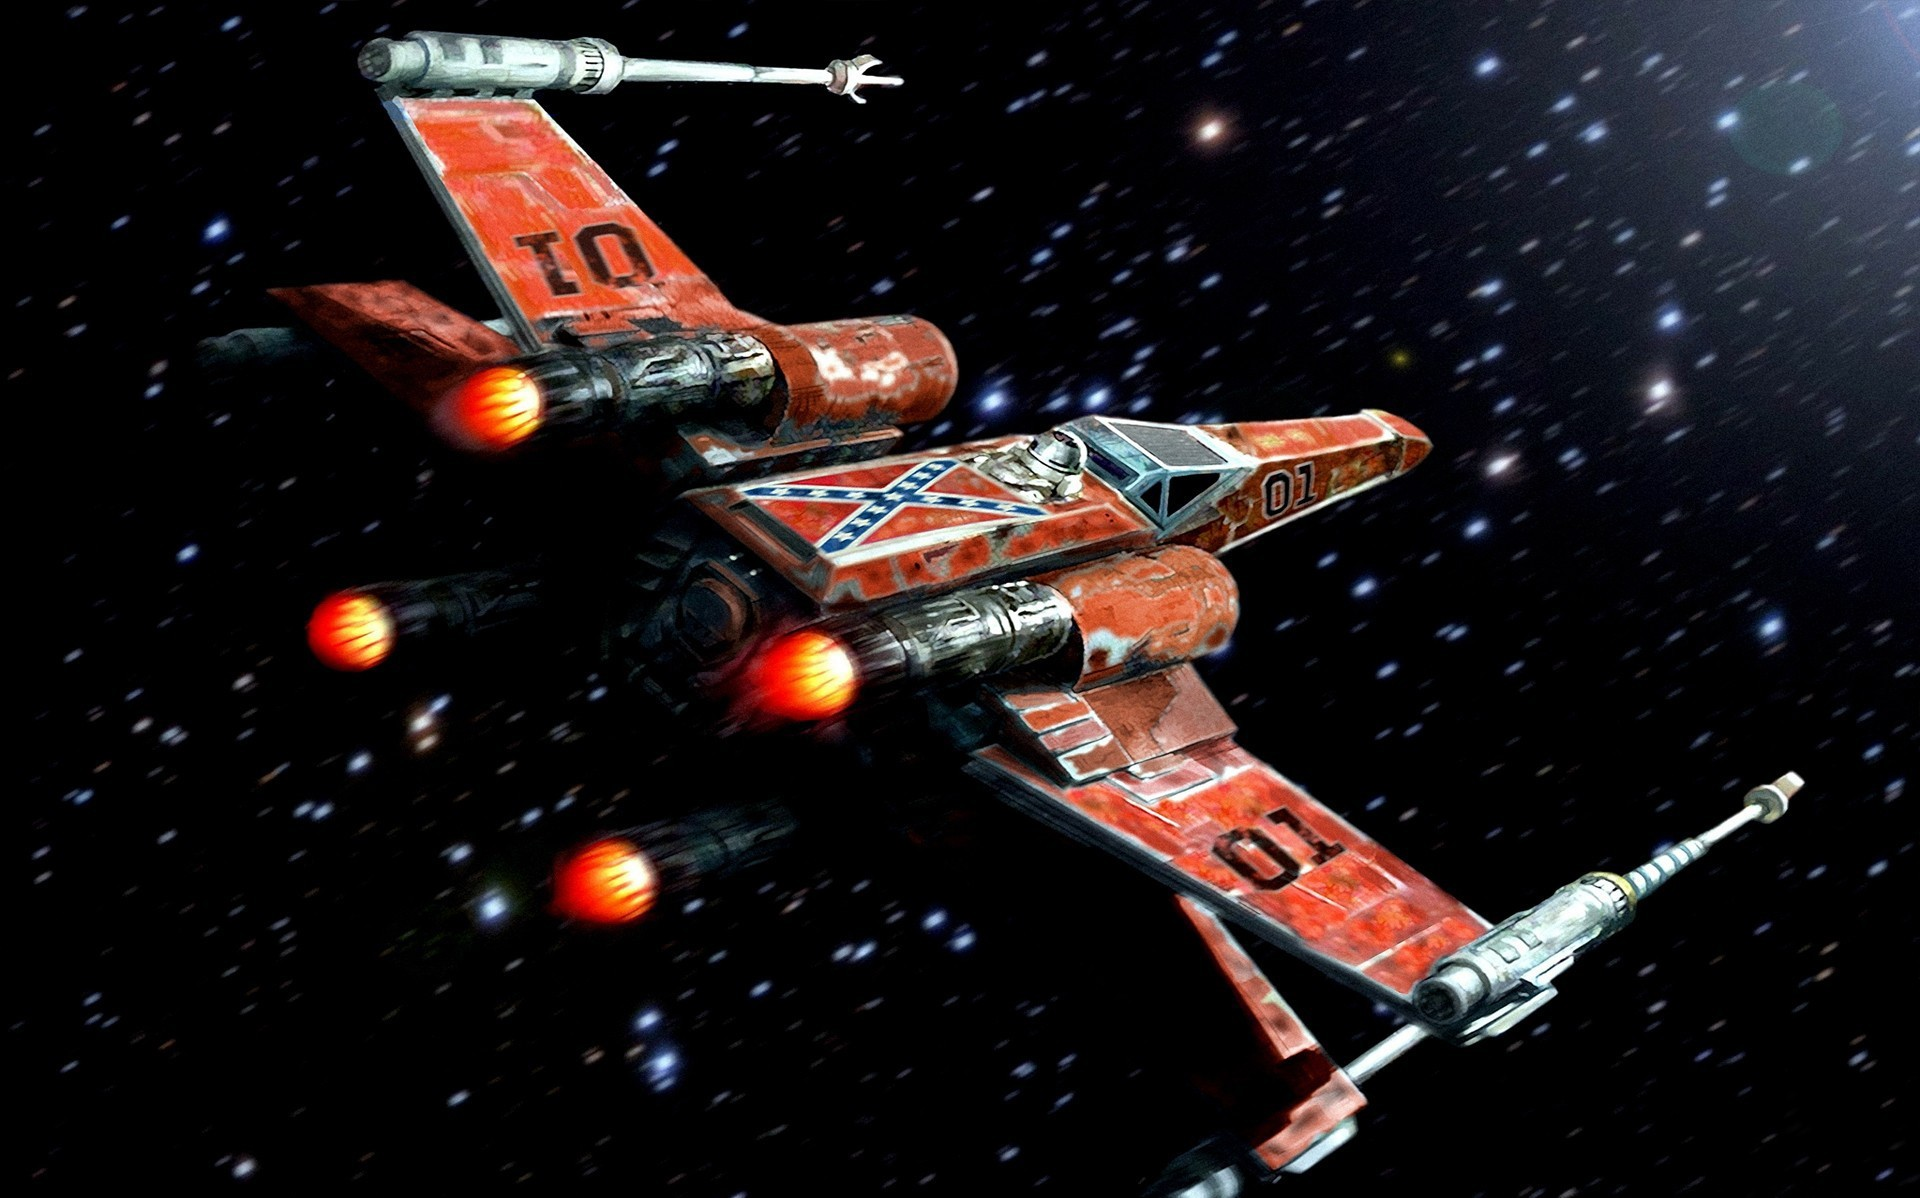 Download Rebel Alliance, X-wing, Star Wars, traitor flags  Wallpapers